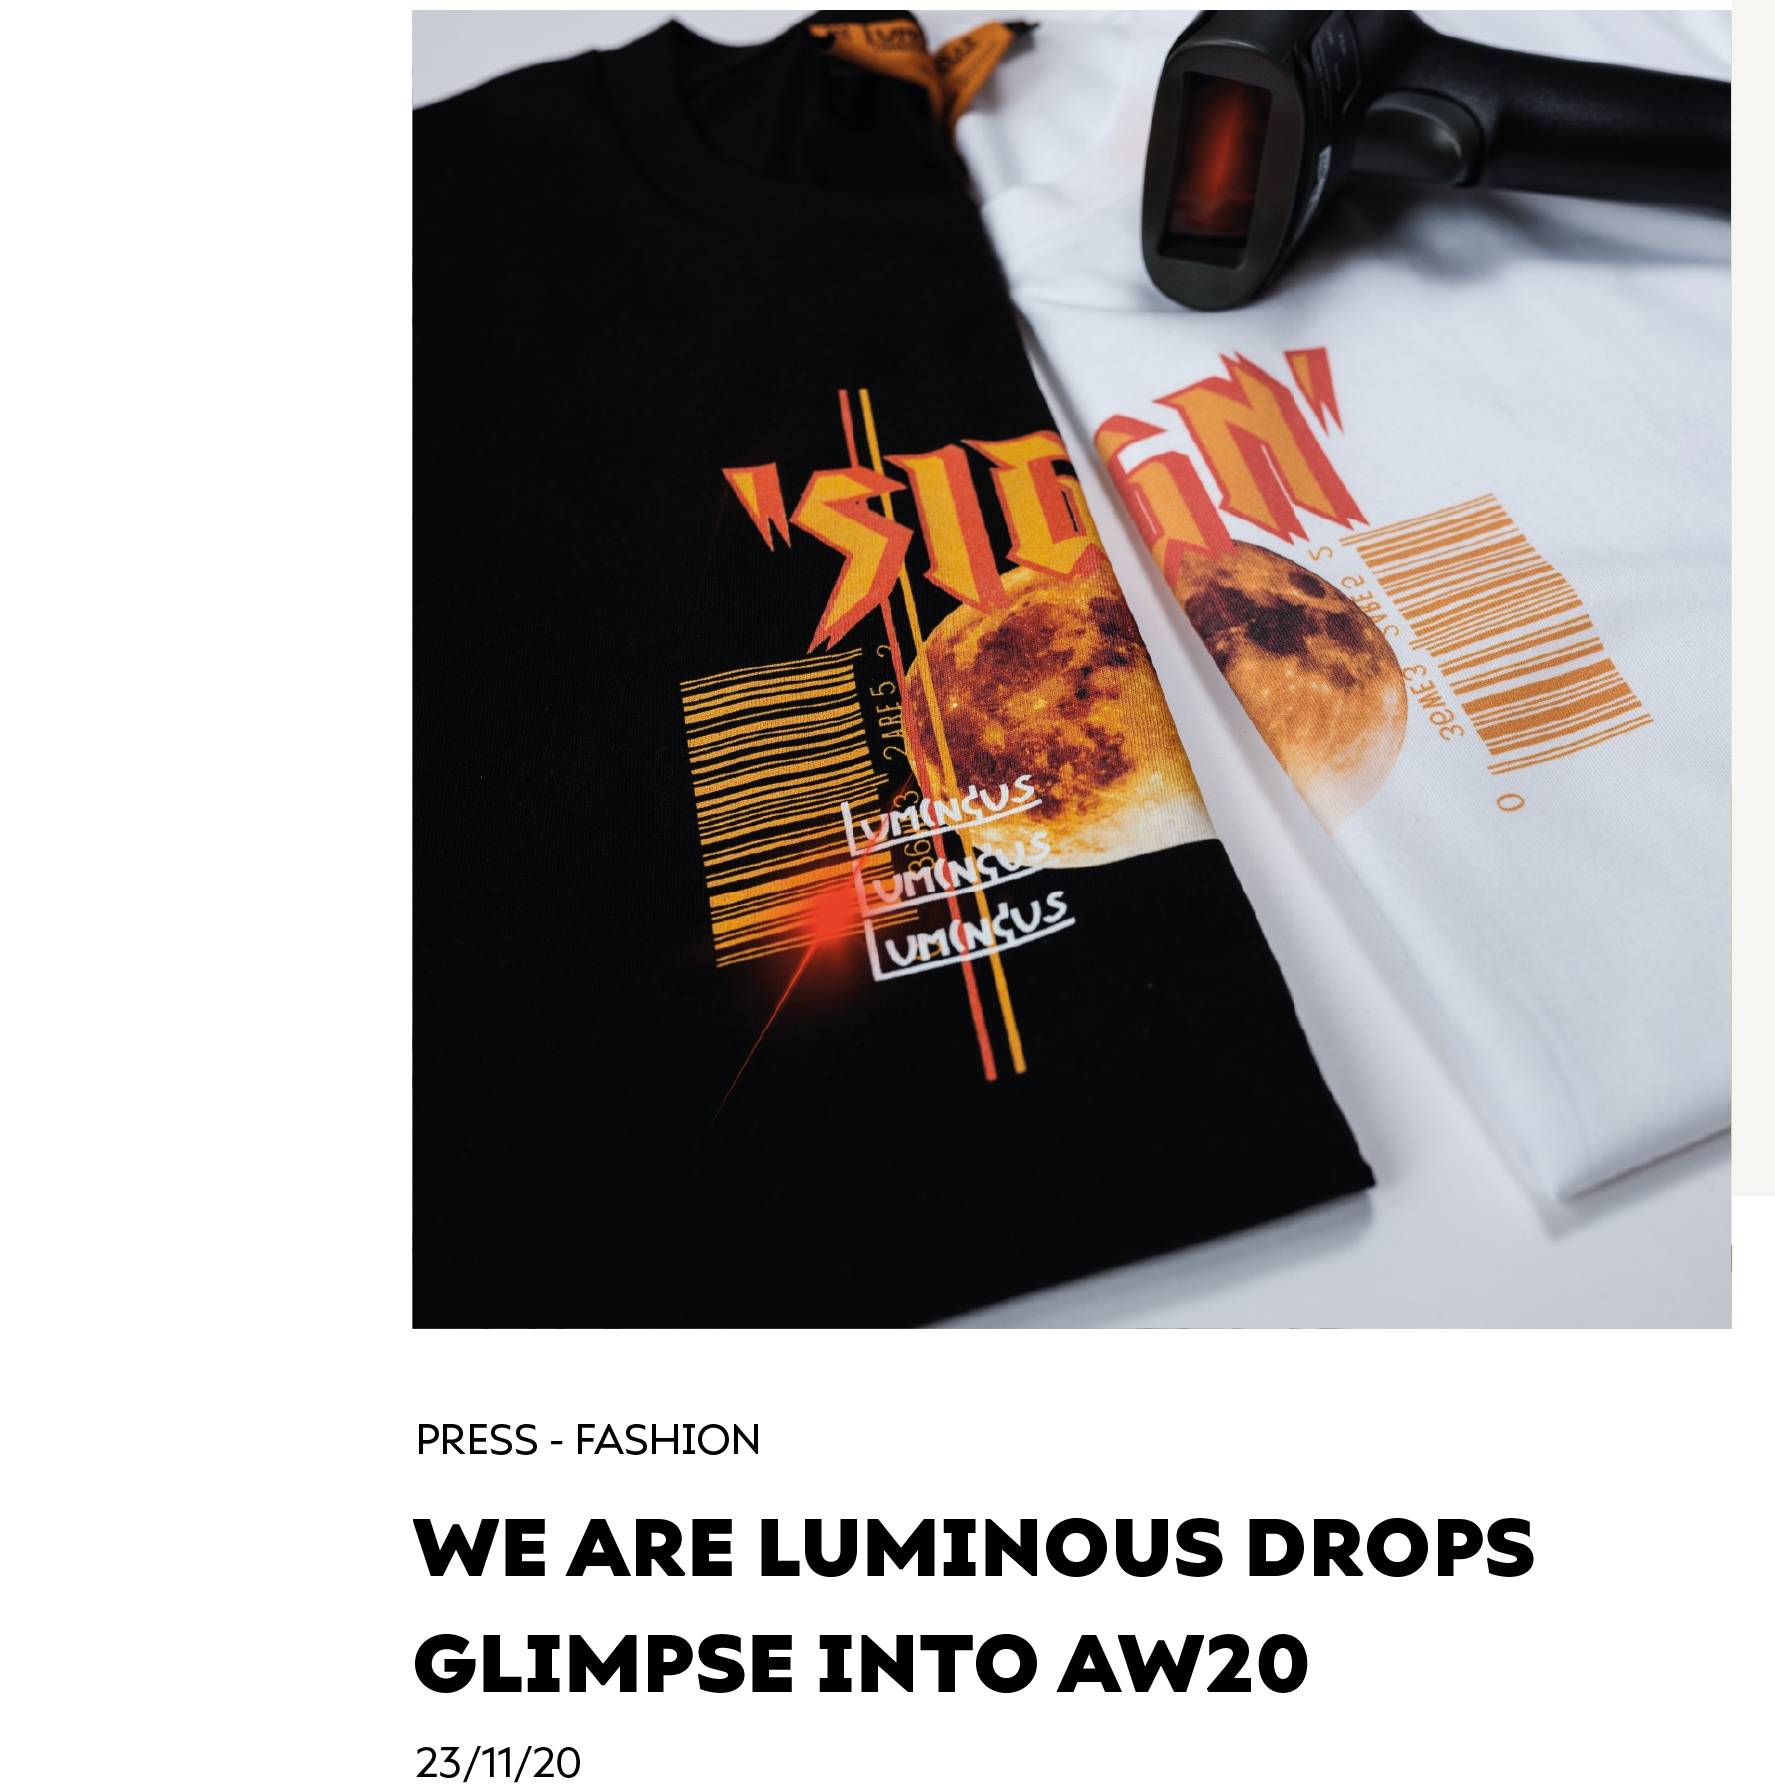 We Are Luminous London Drops Glimpse Into AW20